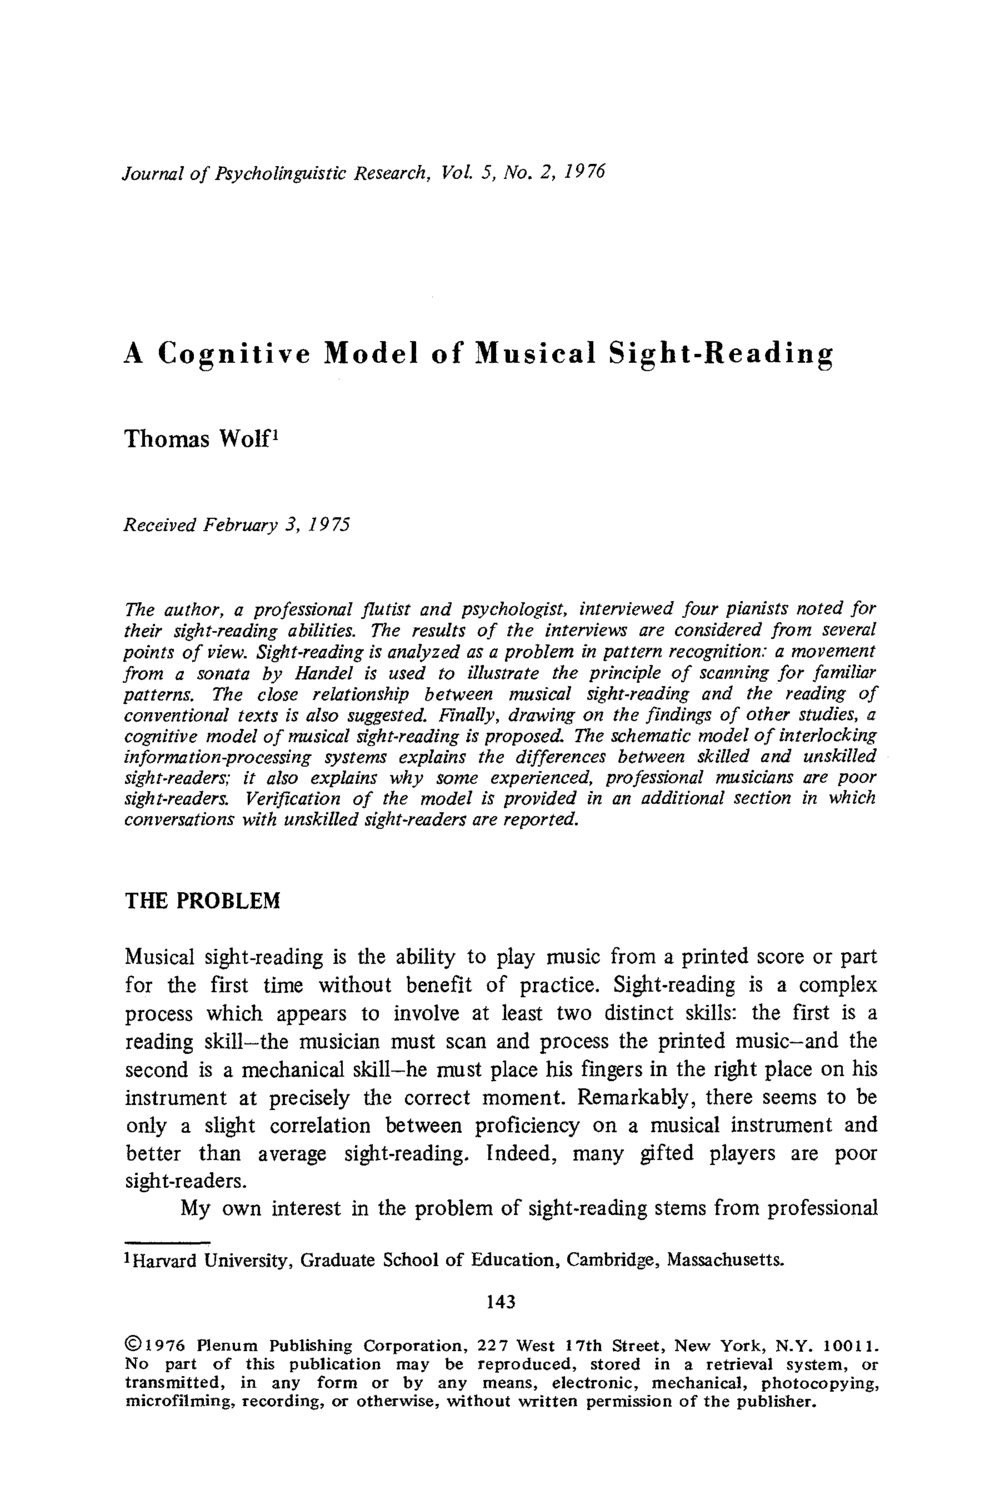 WOLF paper on musical sight reading_Page_01.png